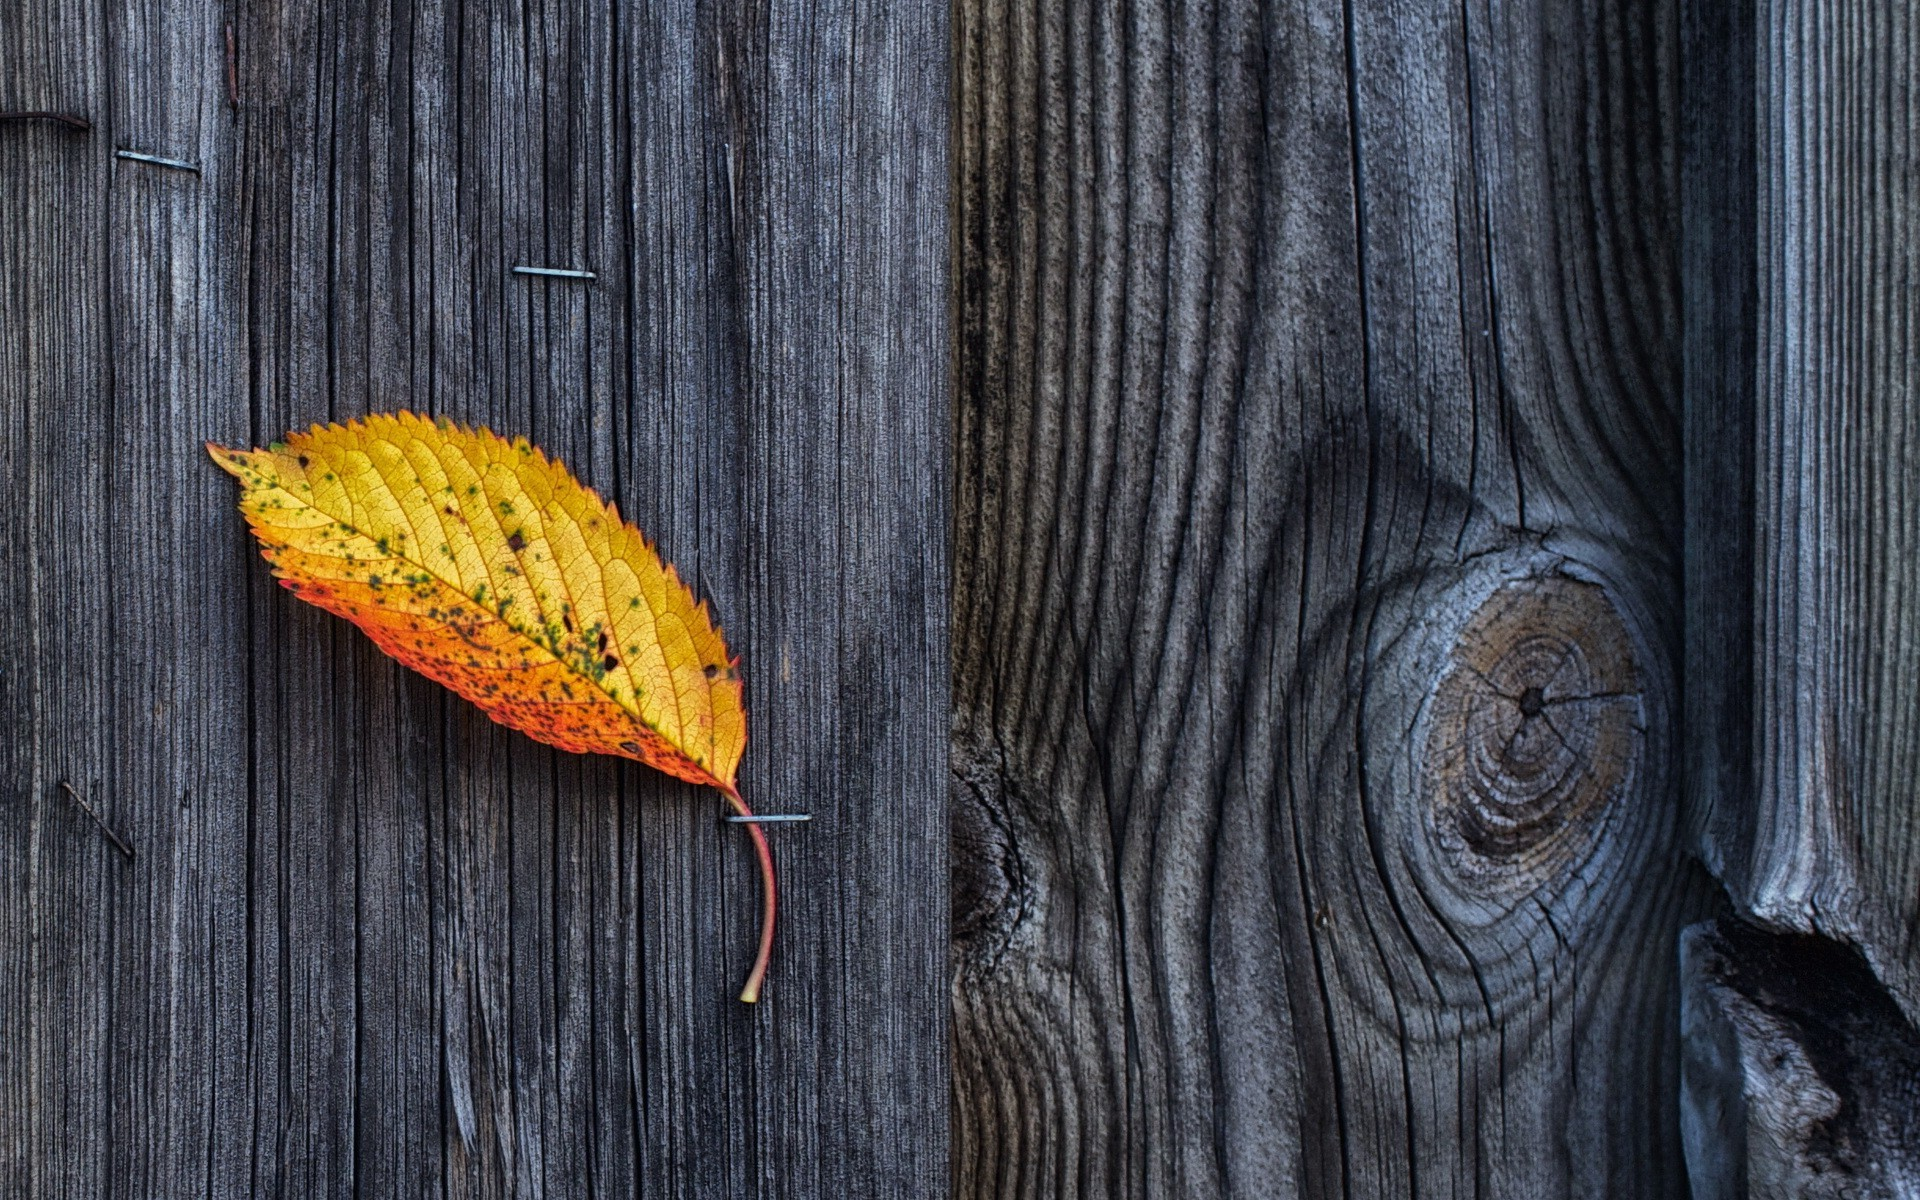 High Resolution Wallpaper Fall Leaves Nature Wooden Surface Wood Texture Pattern Fall